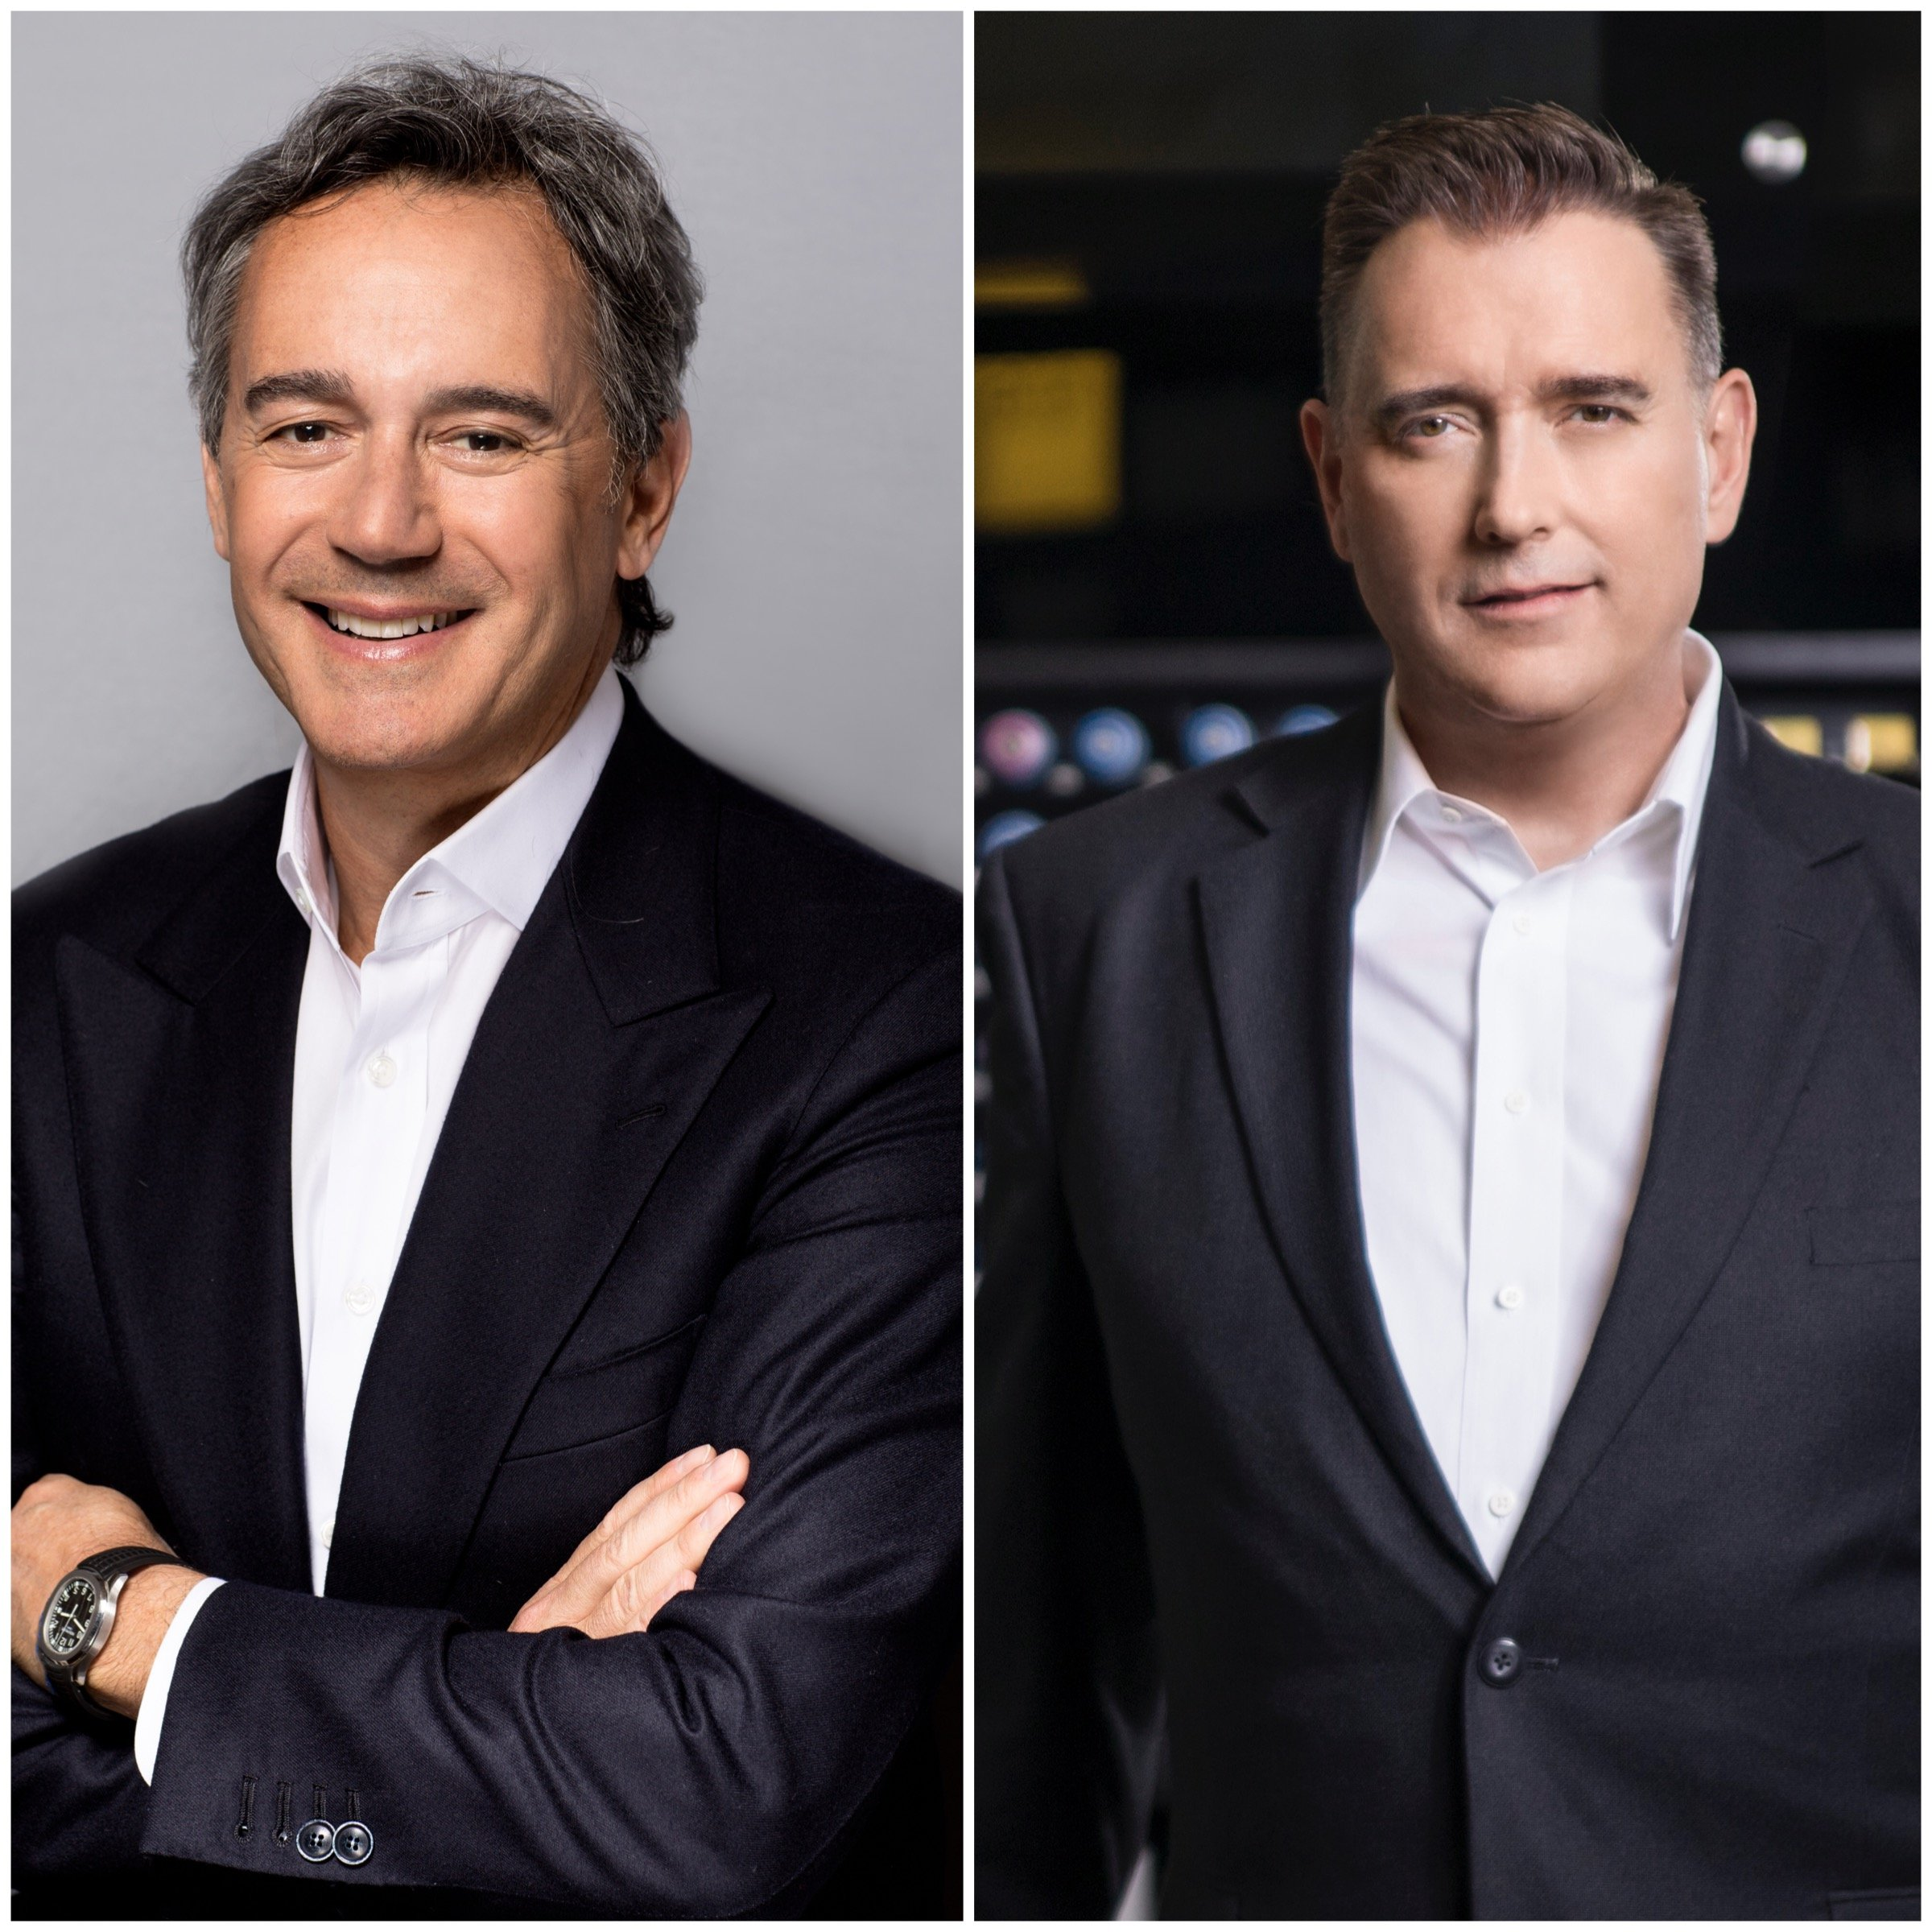 Left: Daniel Kaner, co-founder and current co-president of Oribe, will be named president of the newly acquired entity. Right: Cory Couts, Kao Salon Division global president.